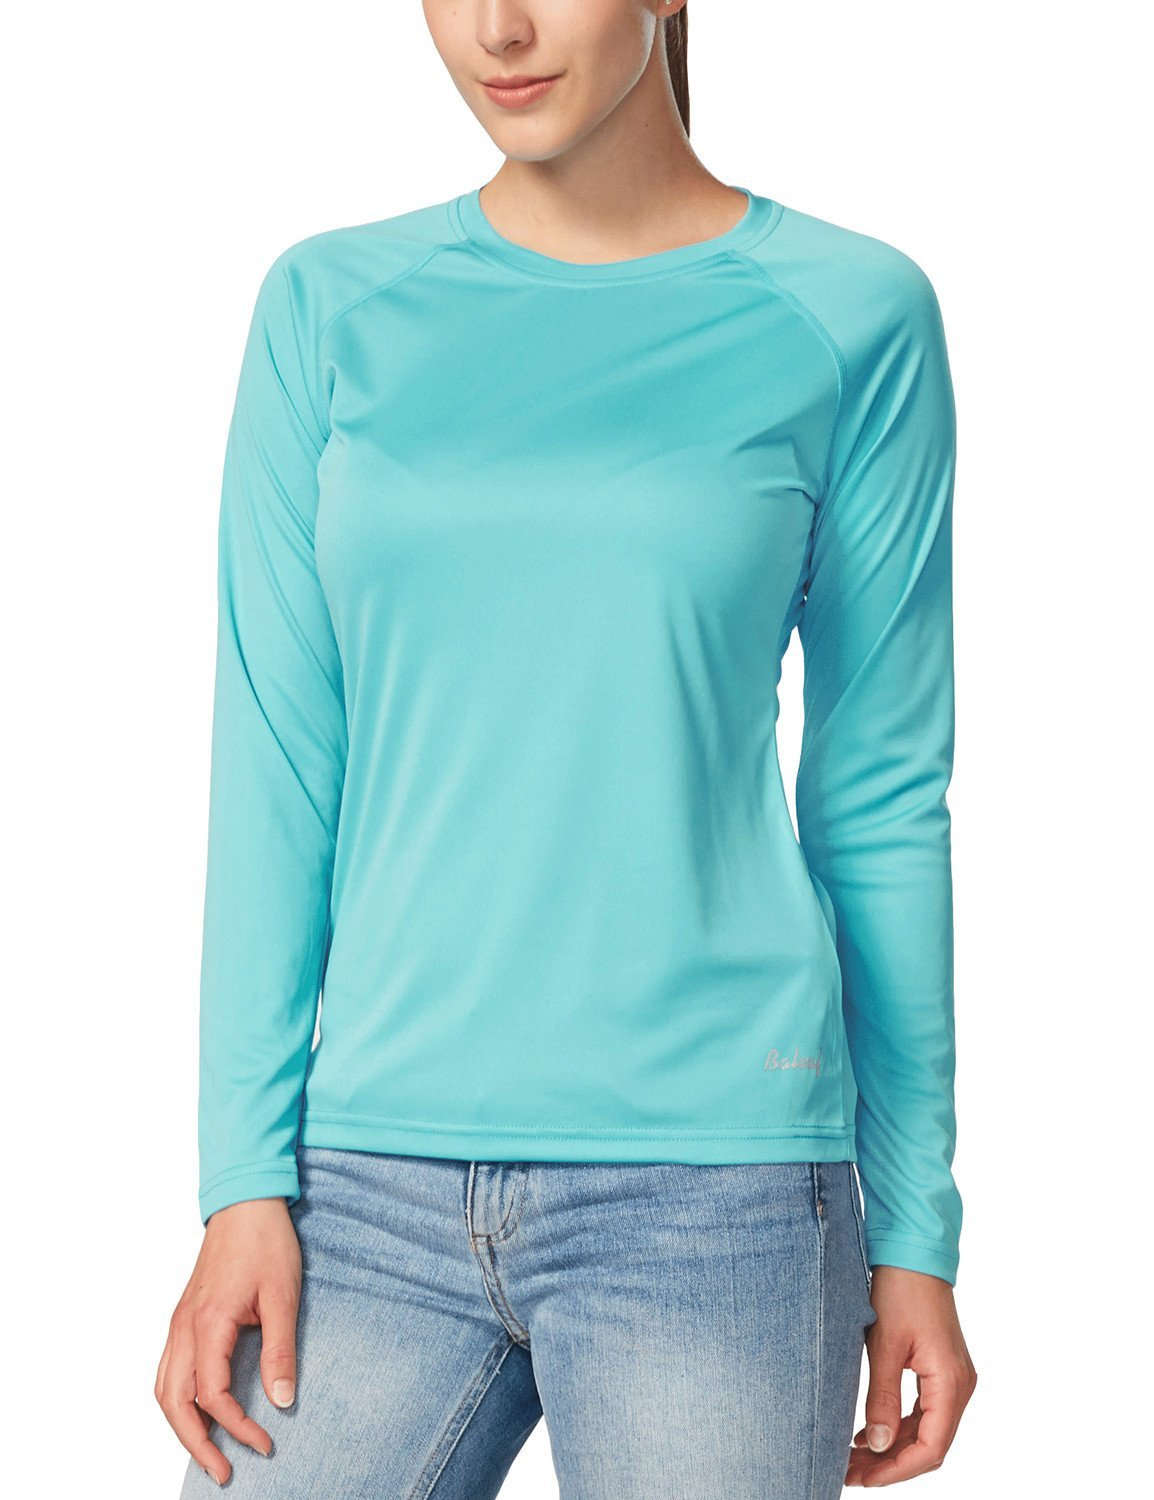 BALEAF Women's UPF 50+ Sun Protection T-Shirt Long Sleeve Outdoor Performance Blue Size XL by BALEAF